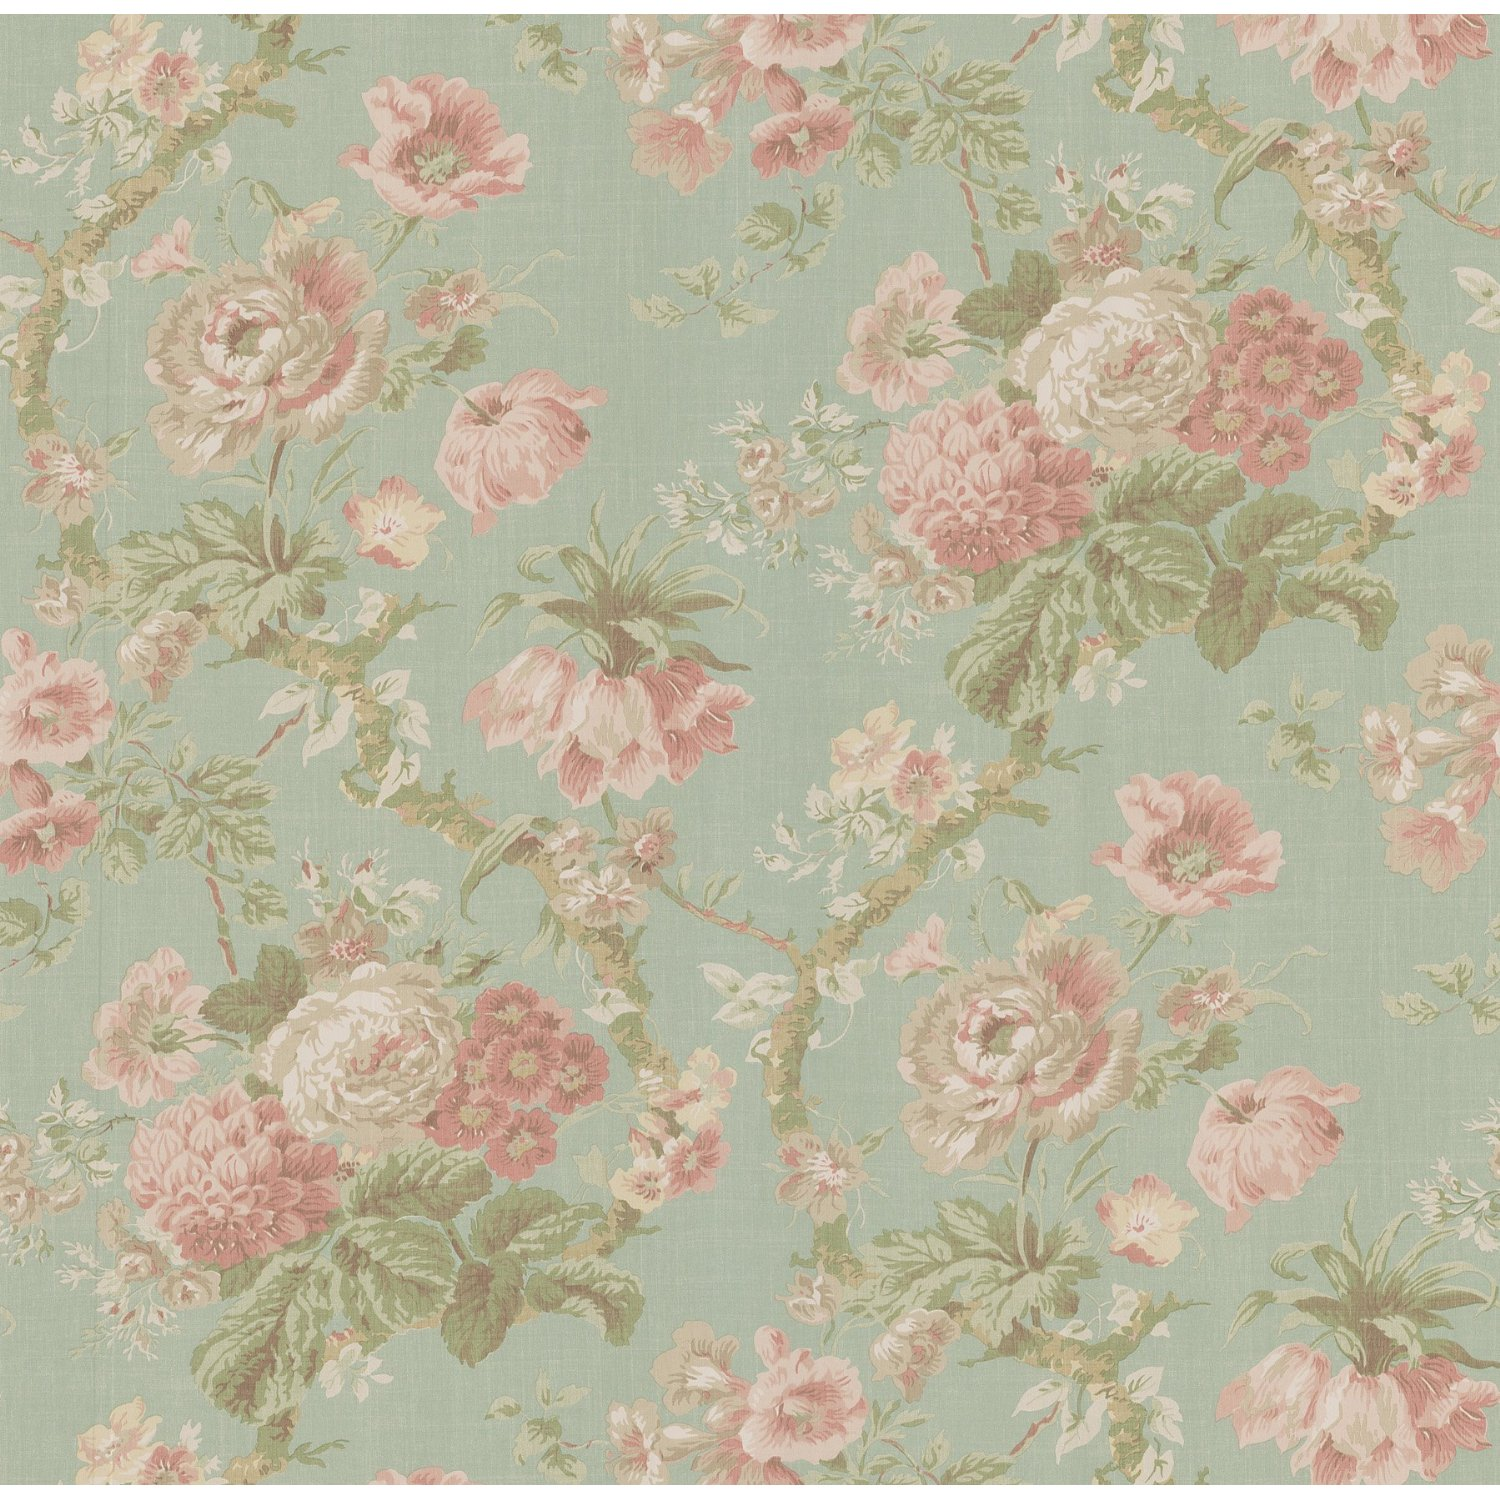 La Fleur Vintage: Floral Wallpaper Flower Background Pattern Tumblr